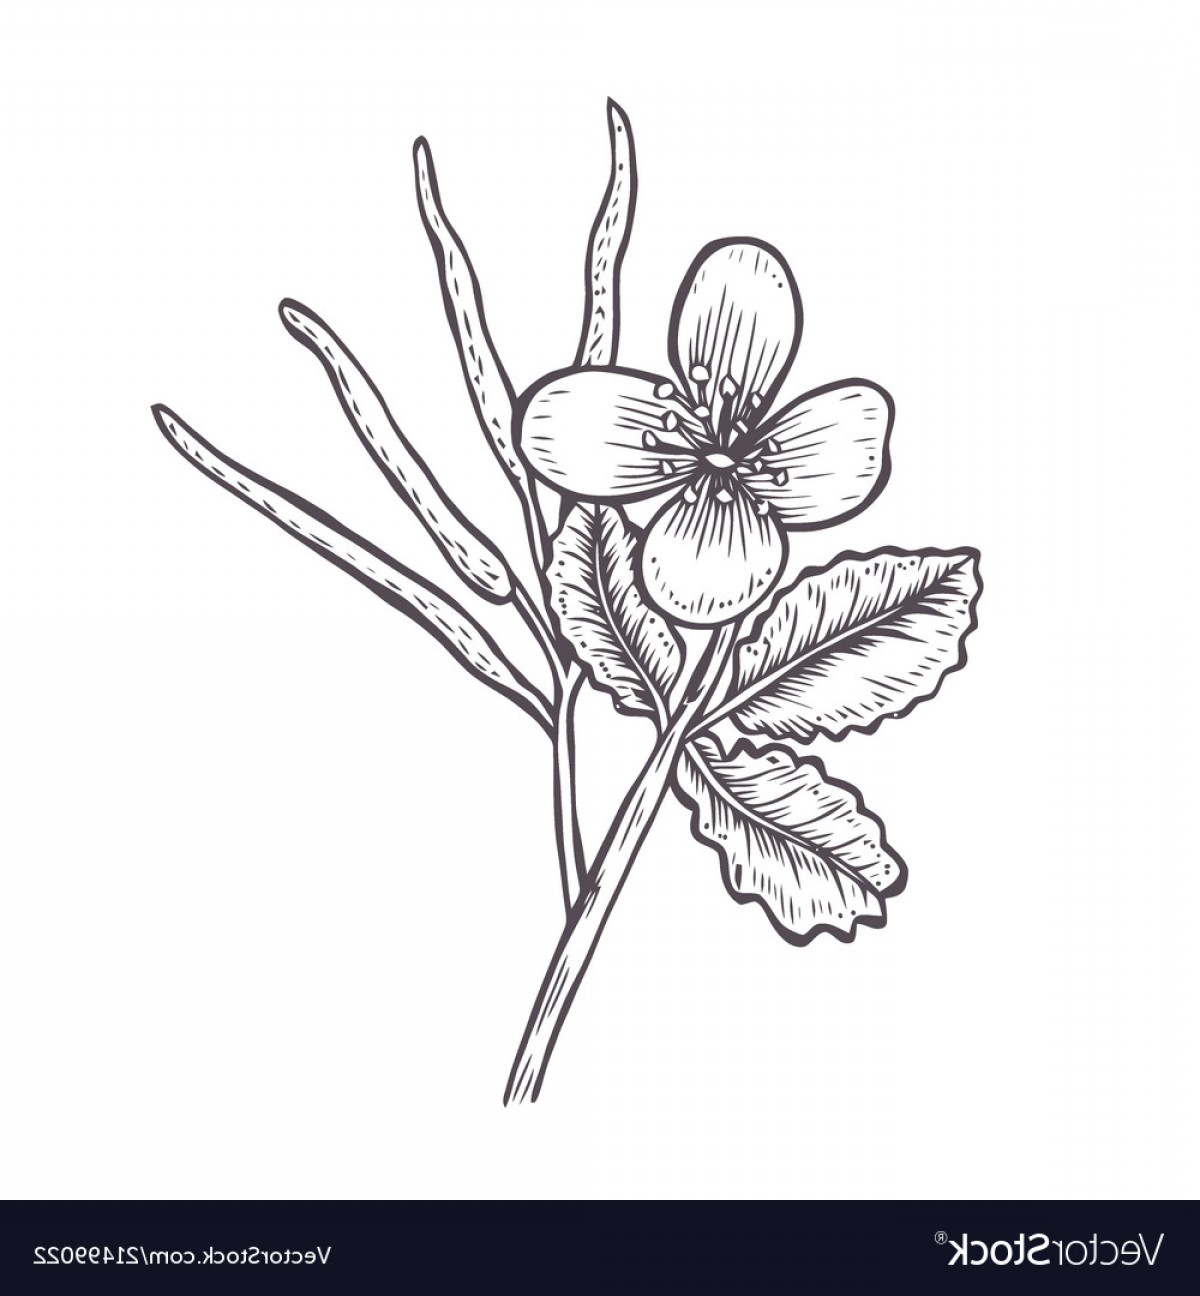 Seed Flower Vectors: Tetterwort Plant Showing Flowers And Seed Pod Vector